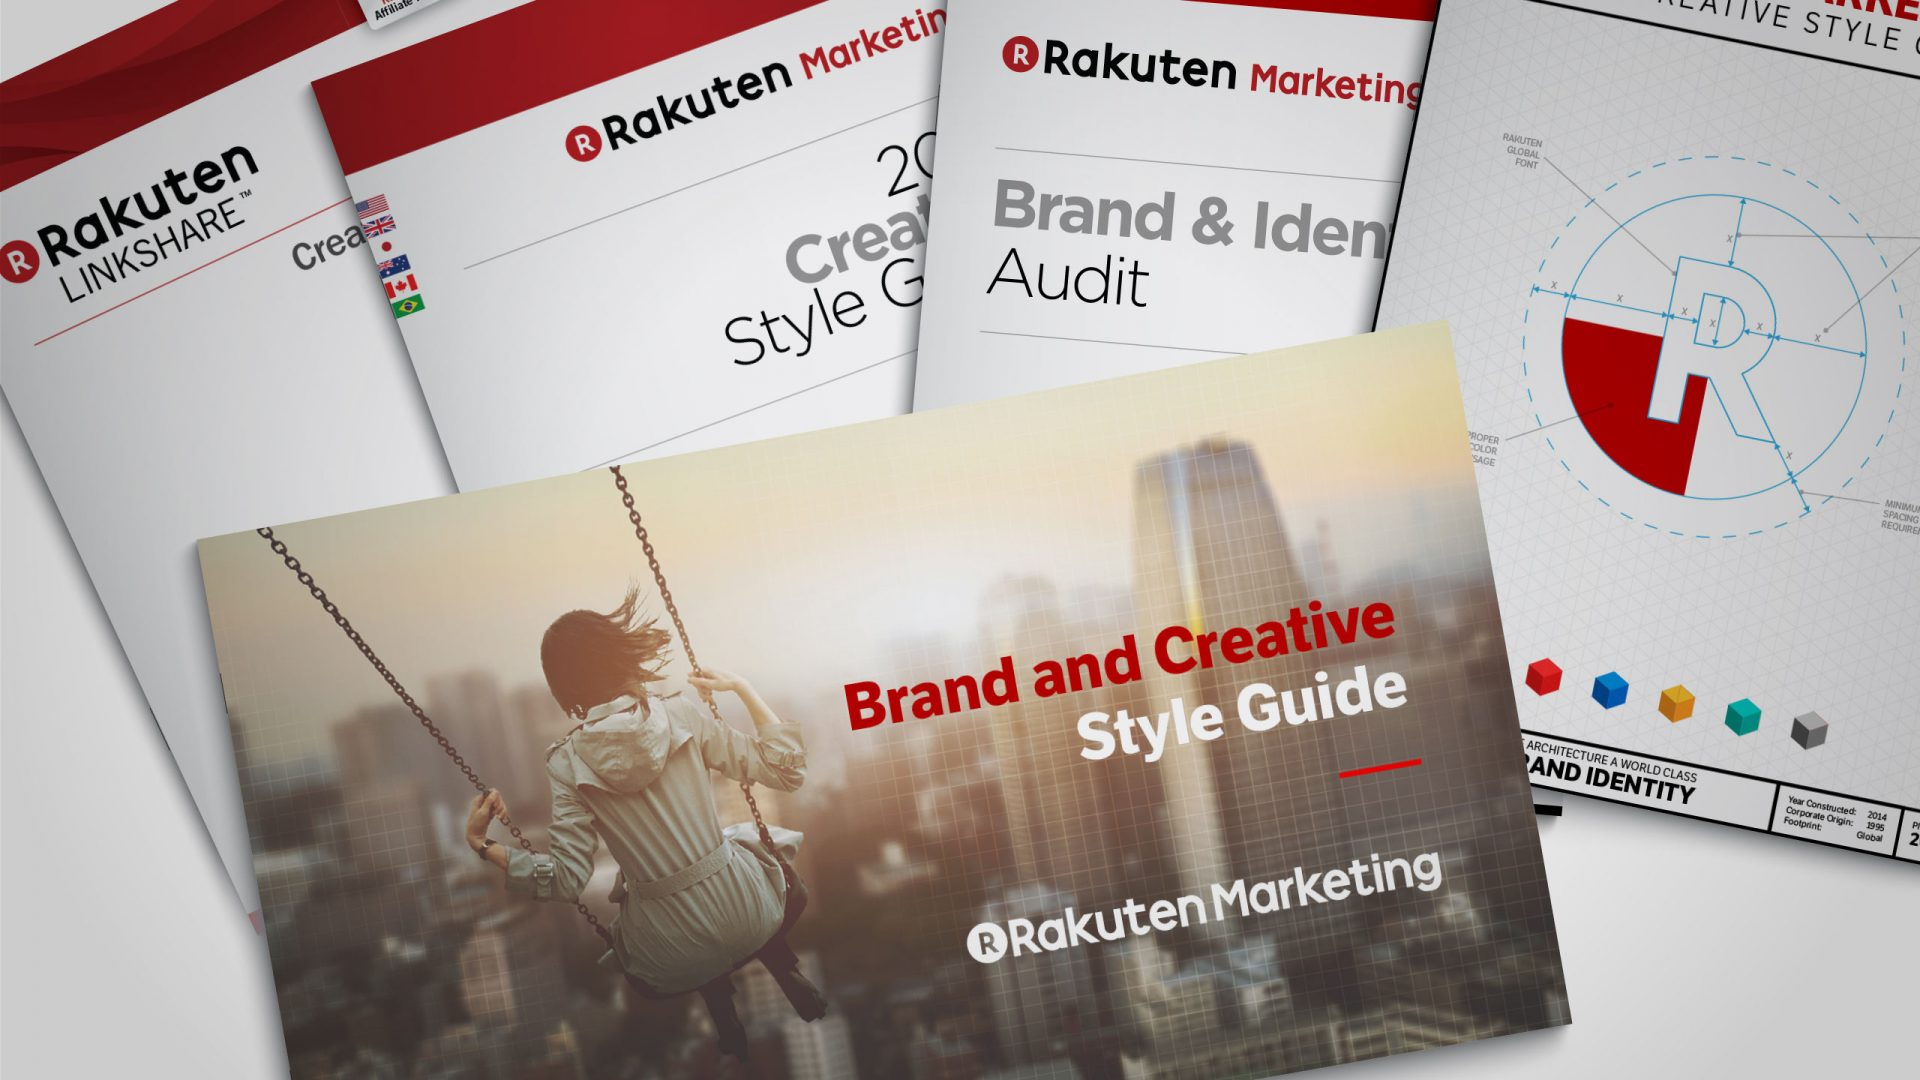 Brand & Creative Style Guides